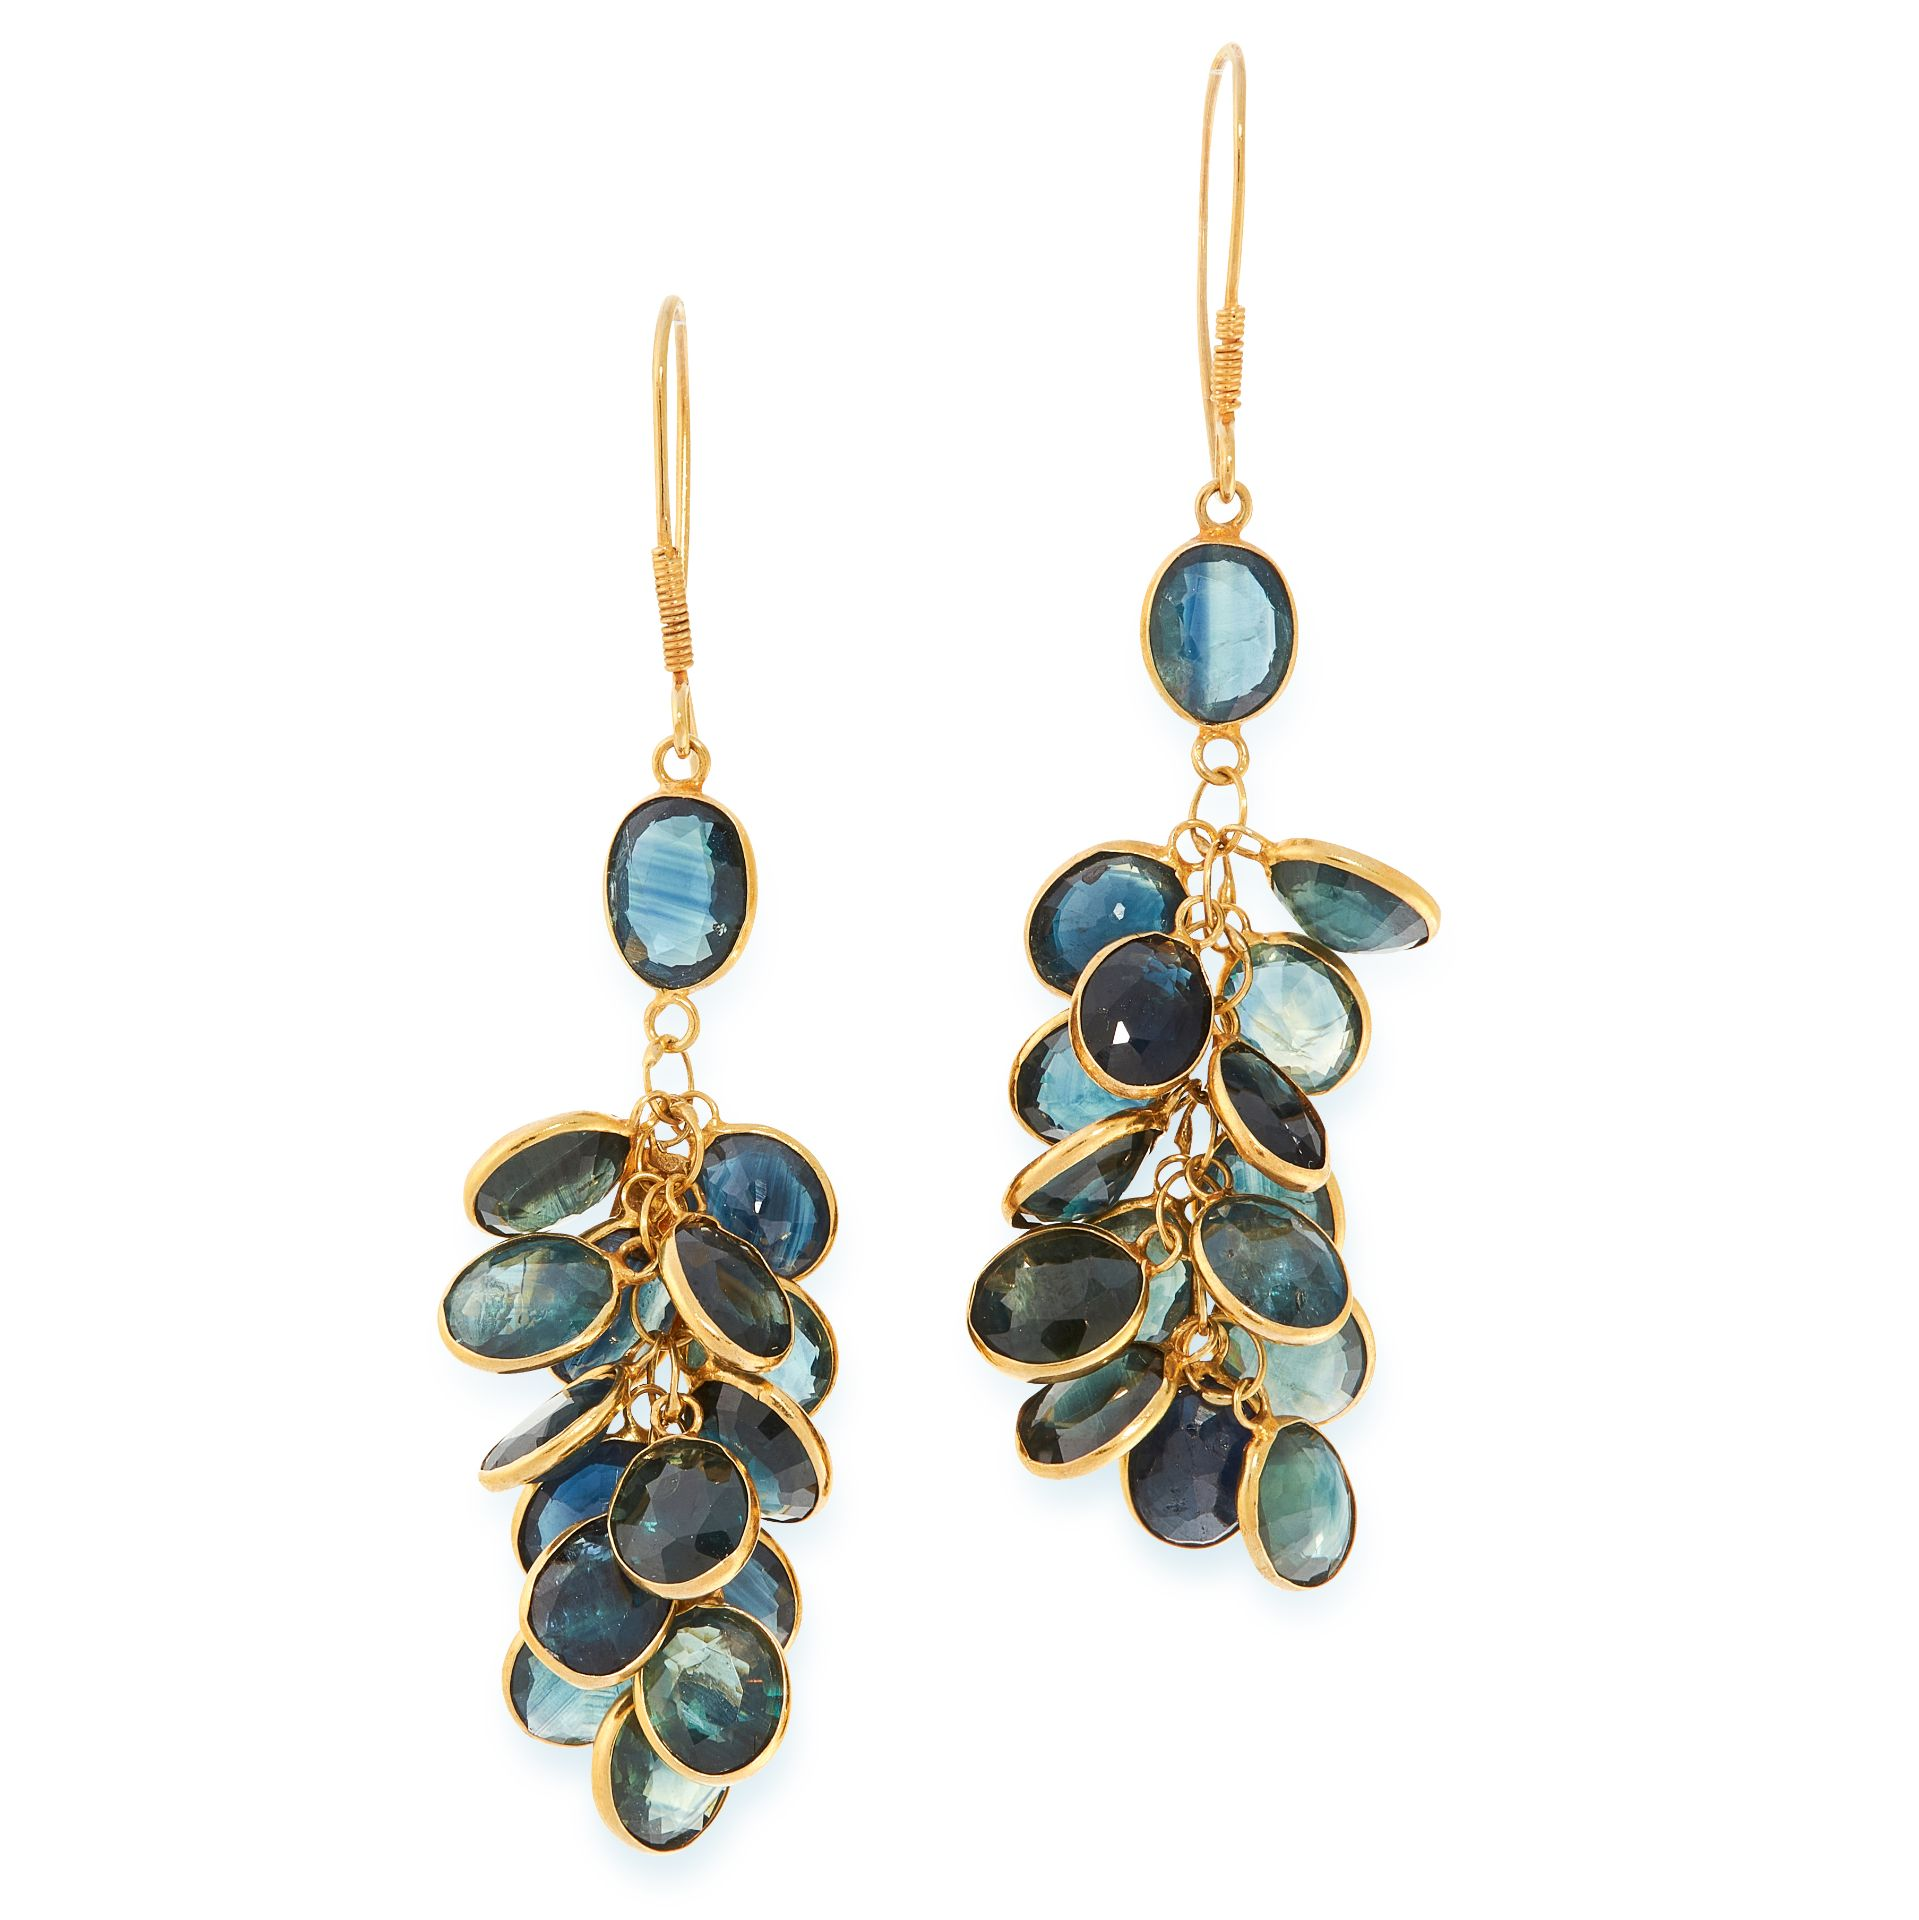 A PAIR OF SAPPHIRE CLUSTER EARRINGS in yellow gold, each set with an oval cut sapphire, suspending a